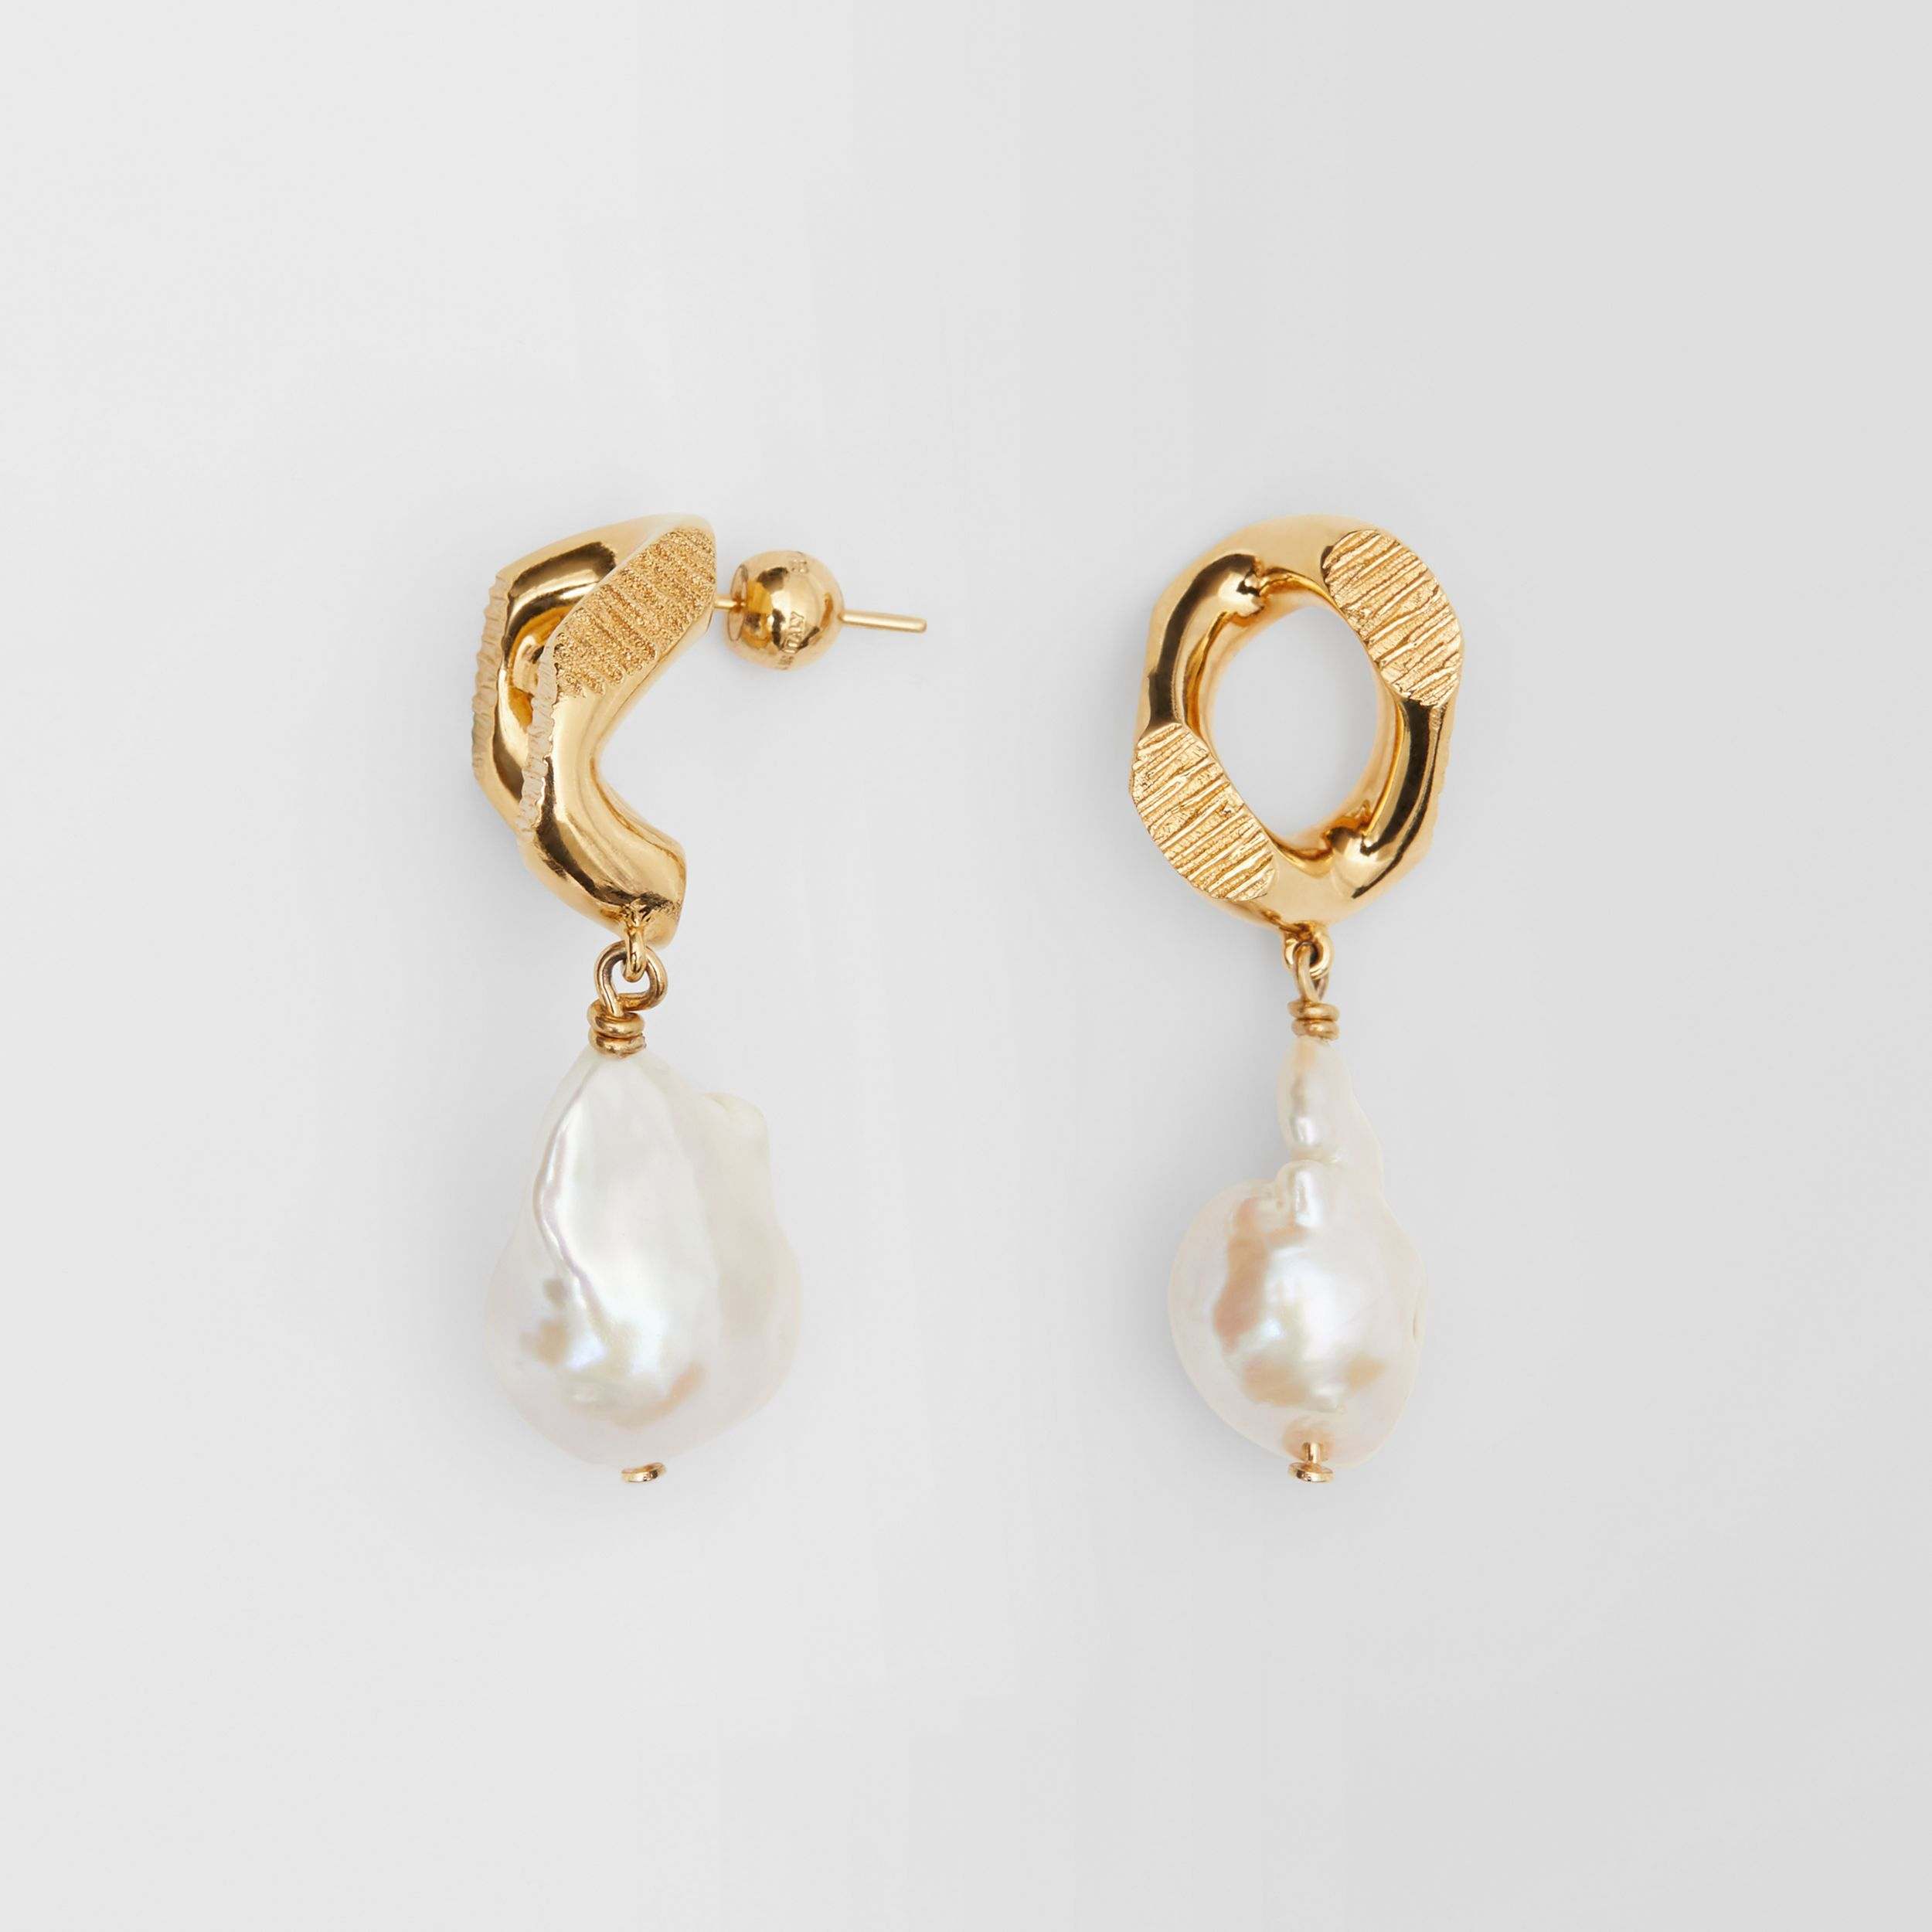 Pearl Detail Gold-plated Chain-link Earrings in Light Gold/white - Women | Burberry - 4